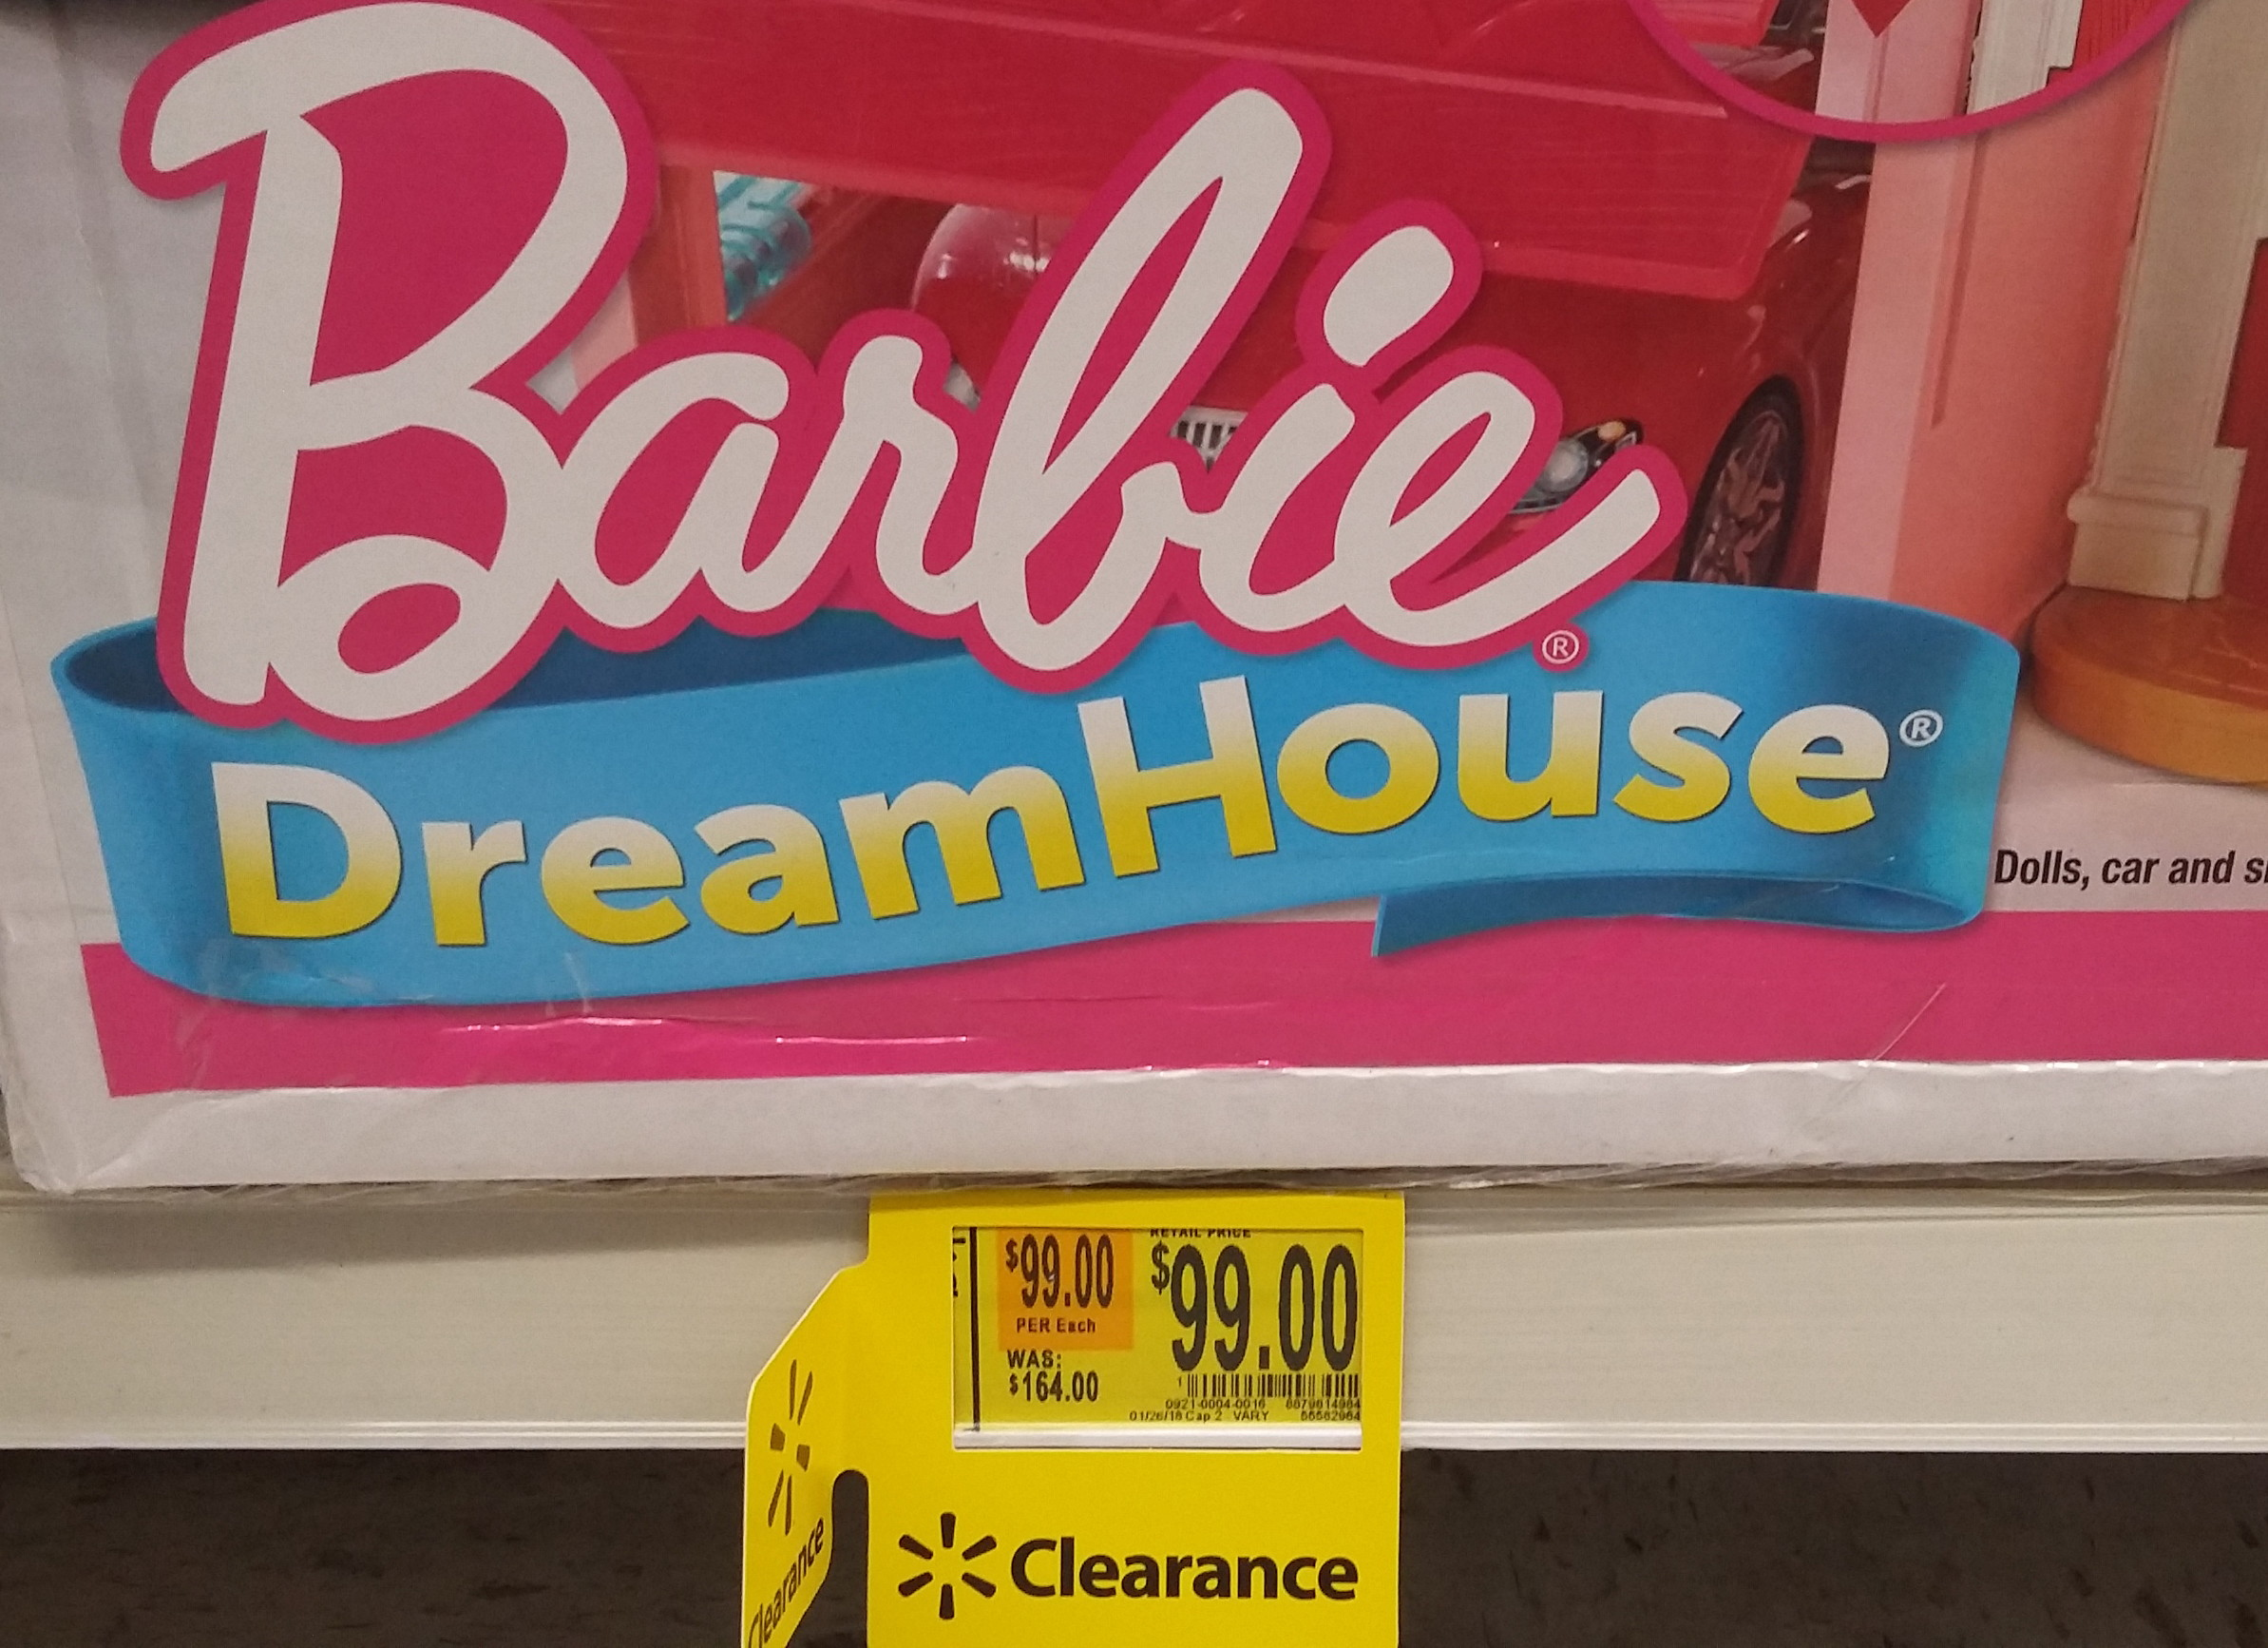 Barbie Dreamhouse Playset w/ 70+ Accessory Pieces, as Low as $99 at Walmart (Reg. $200)!